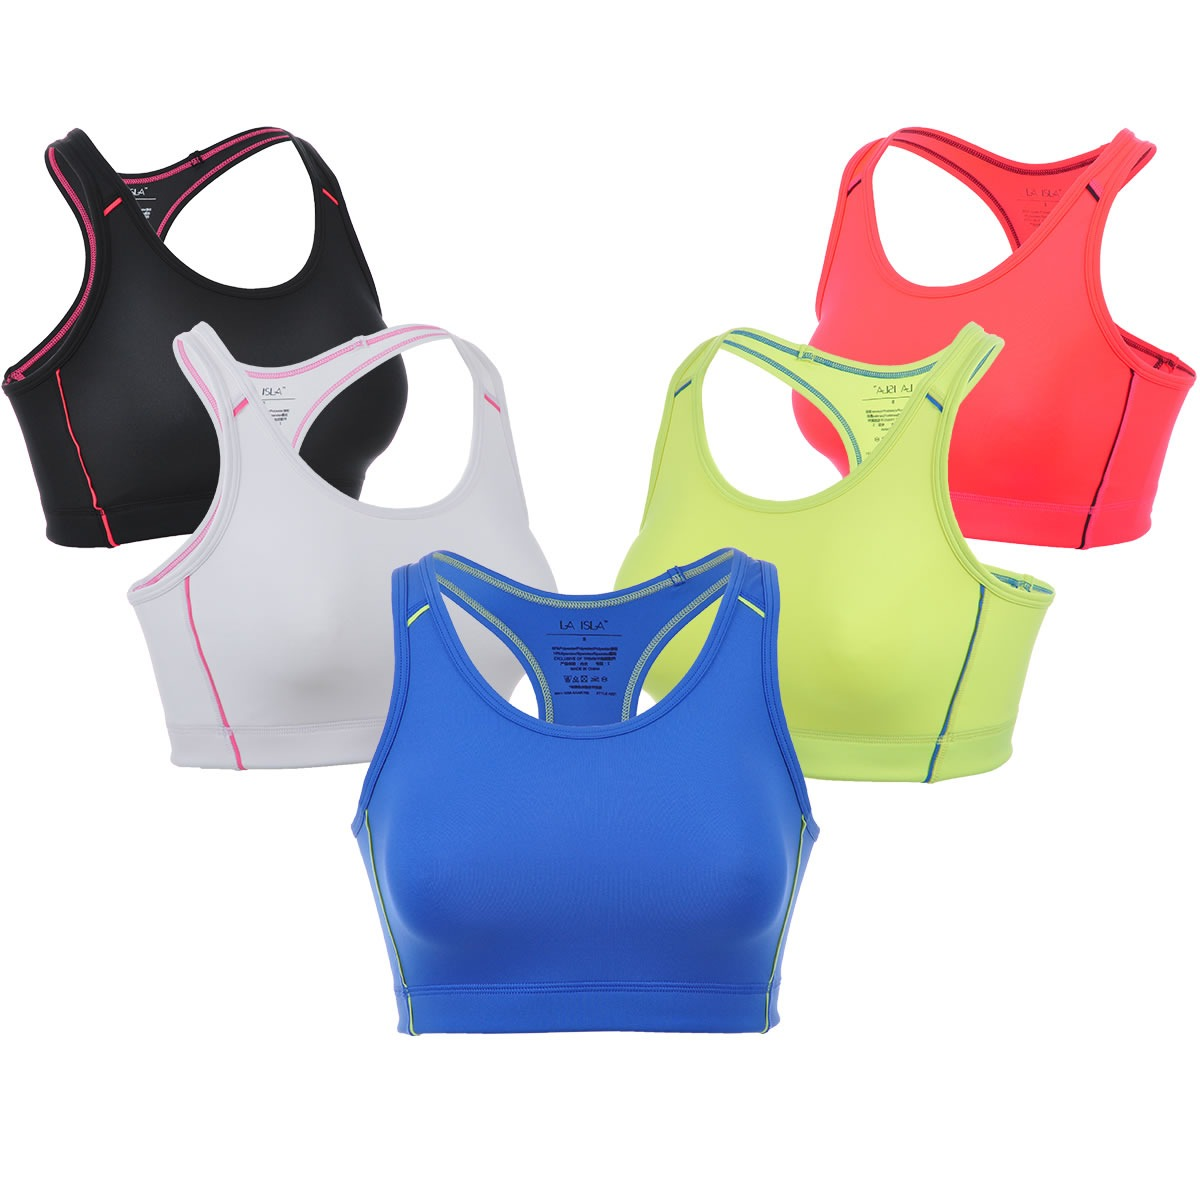 8f102ca8551cd Get Quotations · New Smooth Full Cup No Wire Basic Shiny Color Workout Sports  Bra XS S M L XL